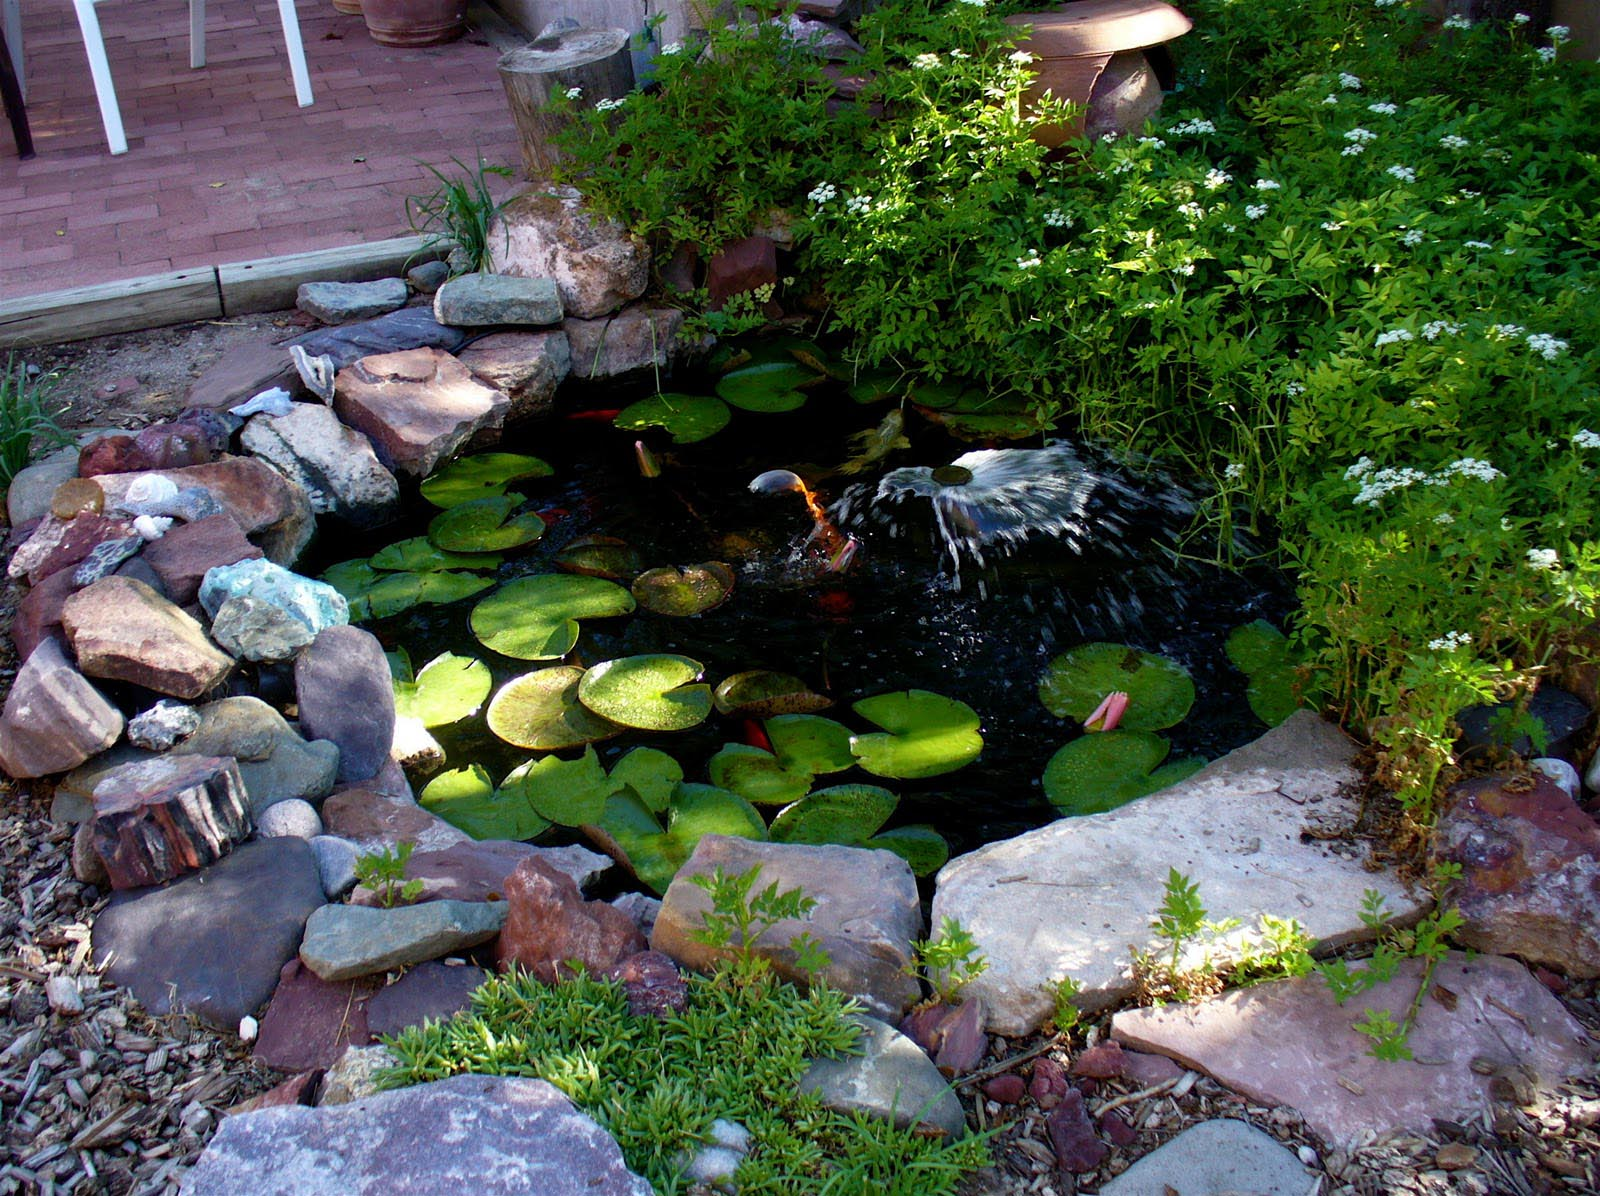 Garden fish pond ideas backyard design ideas for Backyard fish pond designs